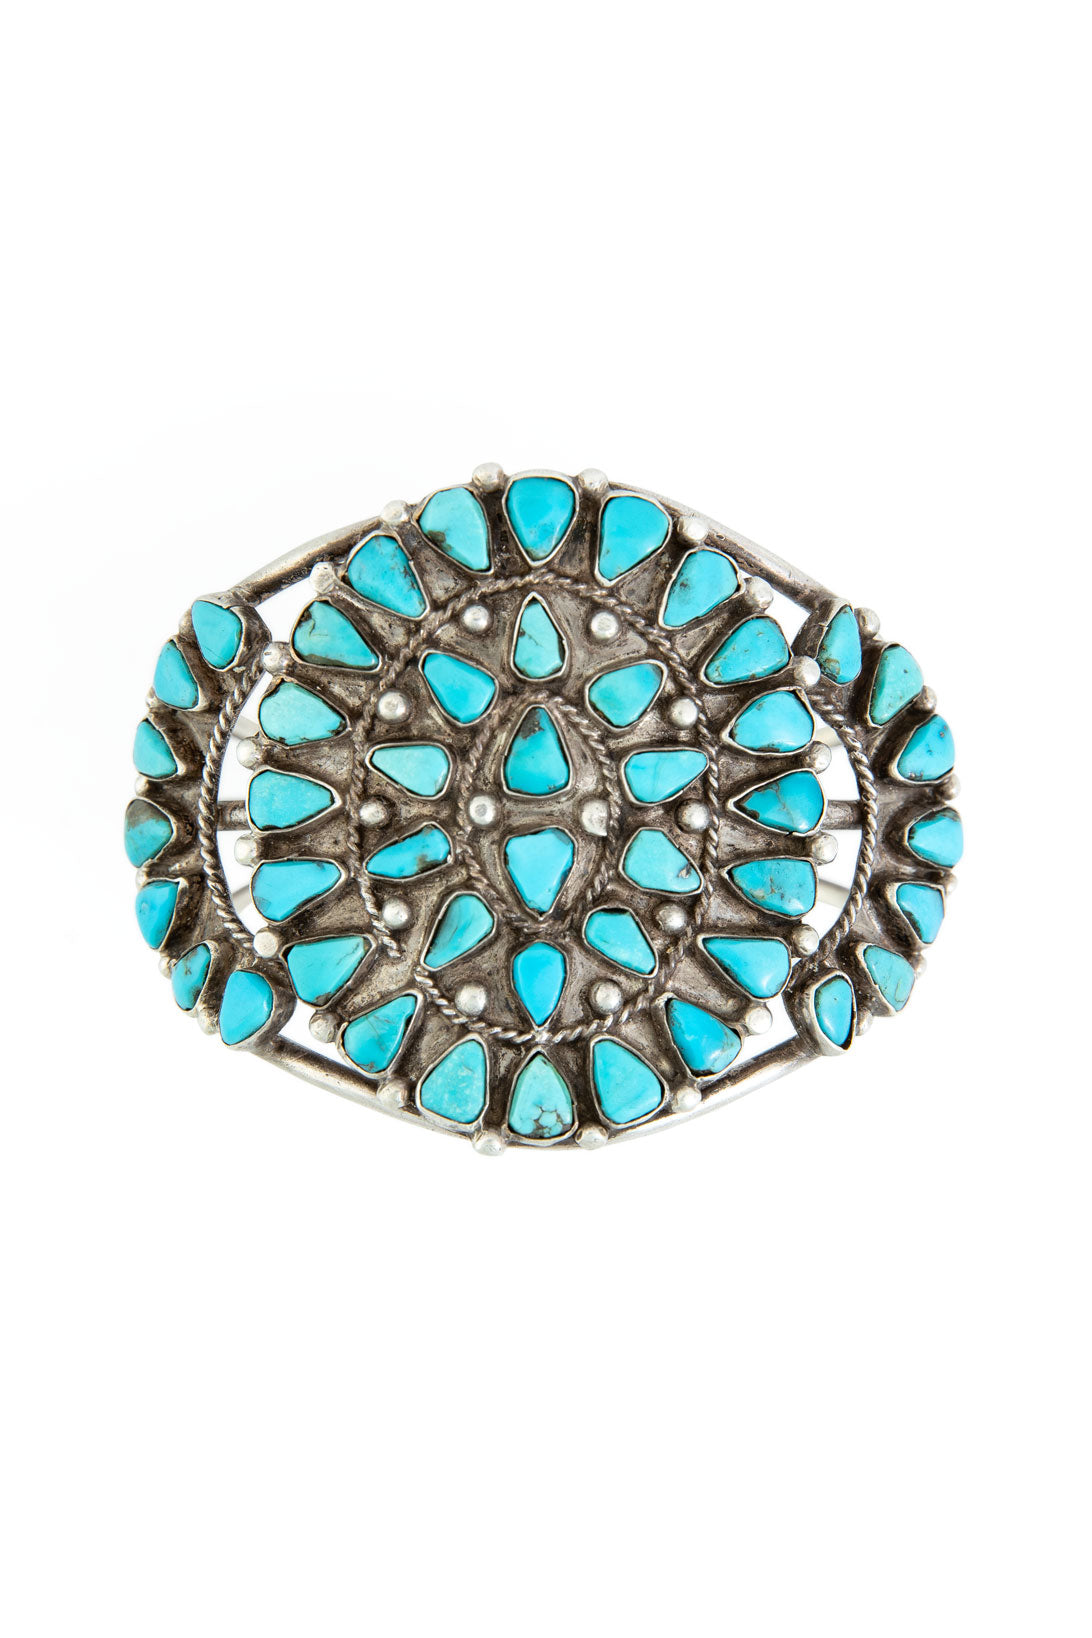 Cuff, Cluster, Turquoise, Vintage, 2431